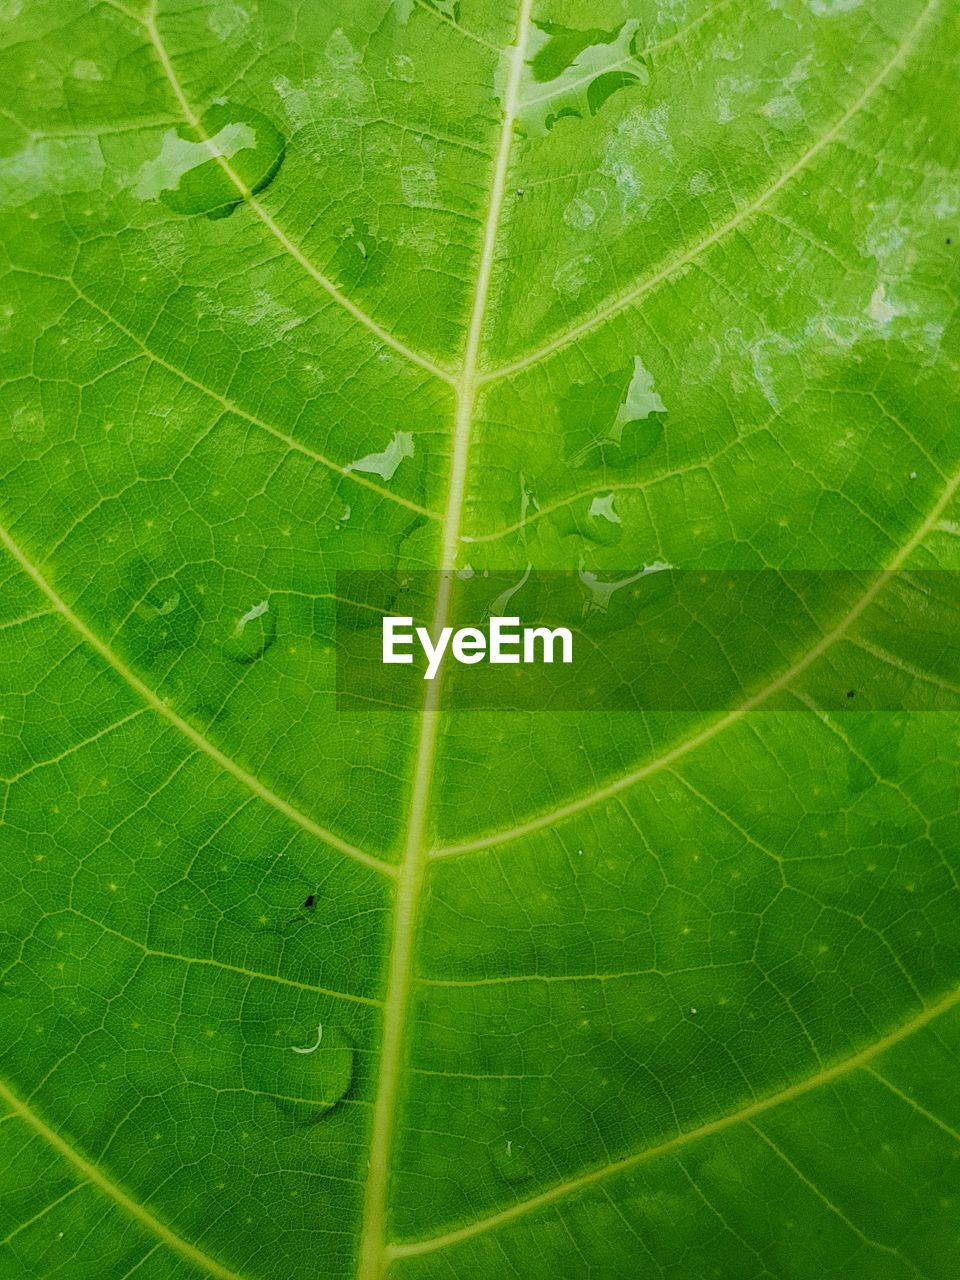 green color, leaf, plant part, leaf vein, nature, close-up, plant, no people, beauty in nature, full frame, backgrounds, growth, outdoors, high angle view, water, drop, freshness, day, natural pattern, leaves